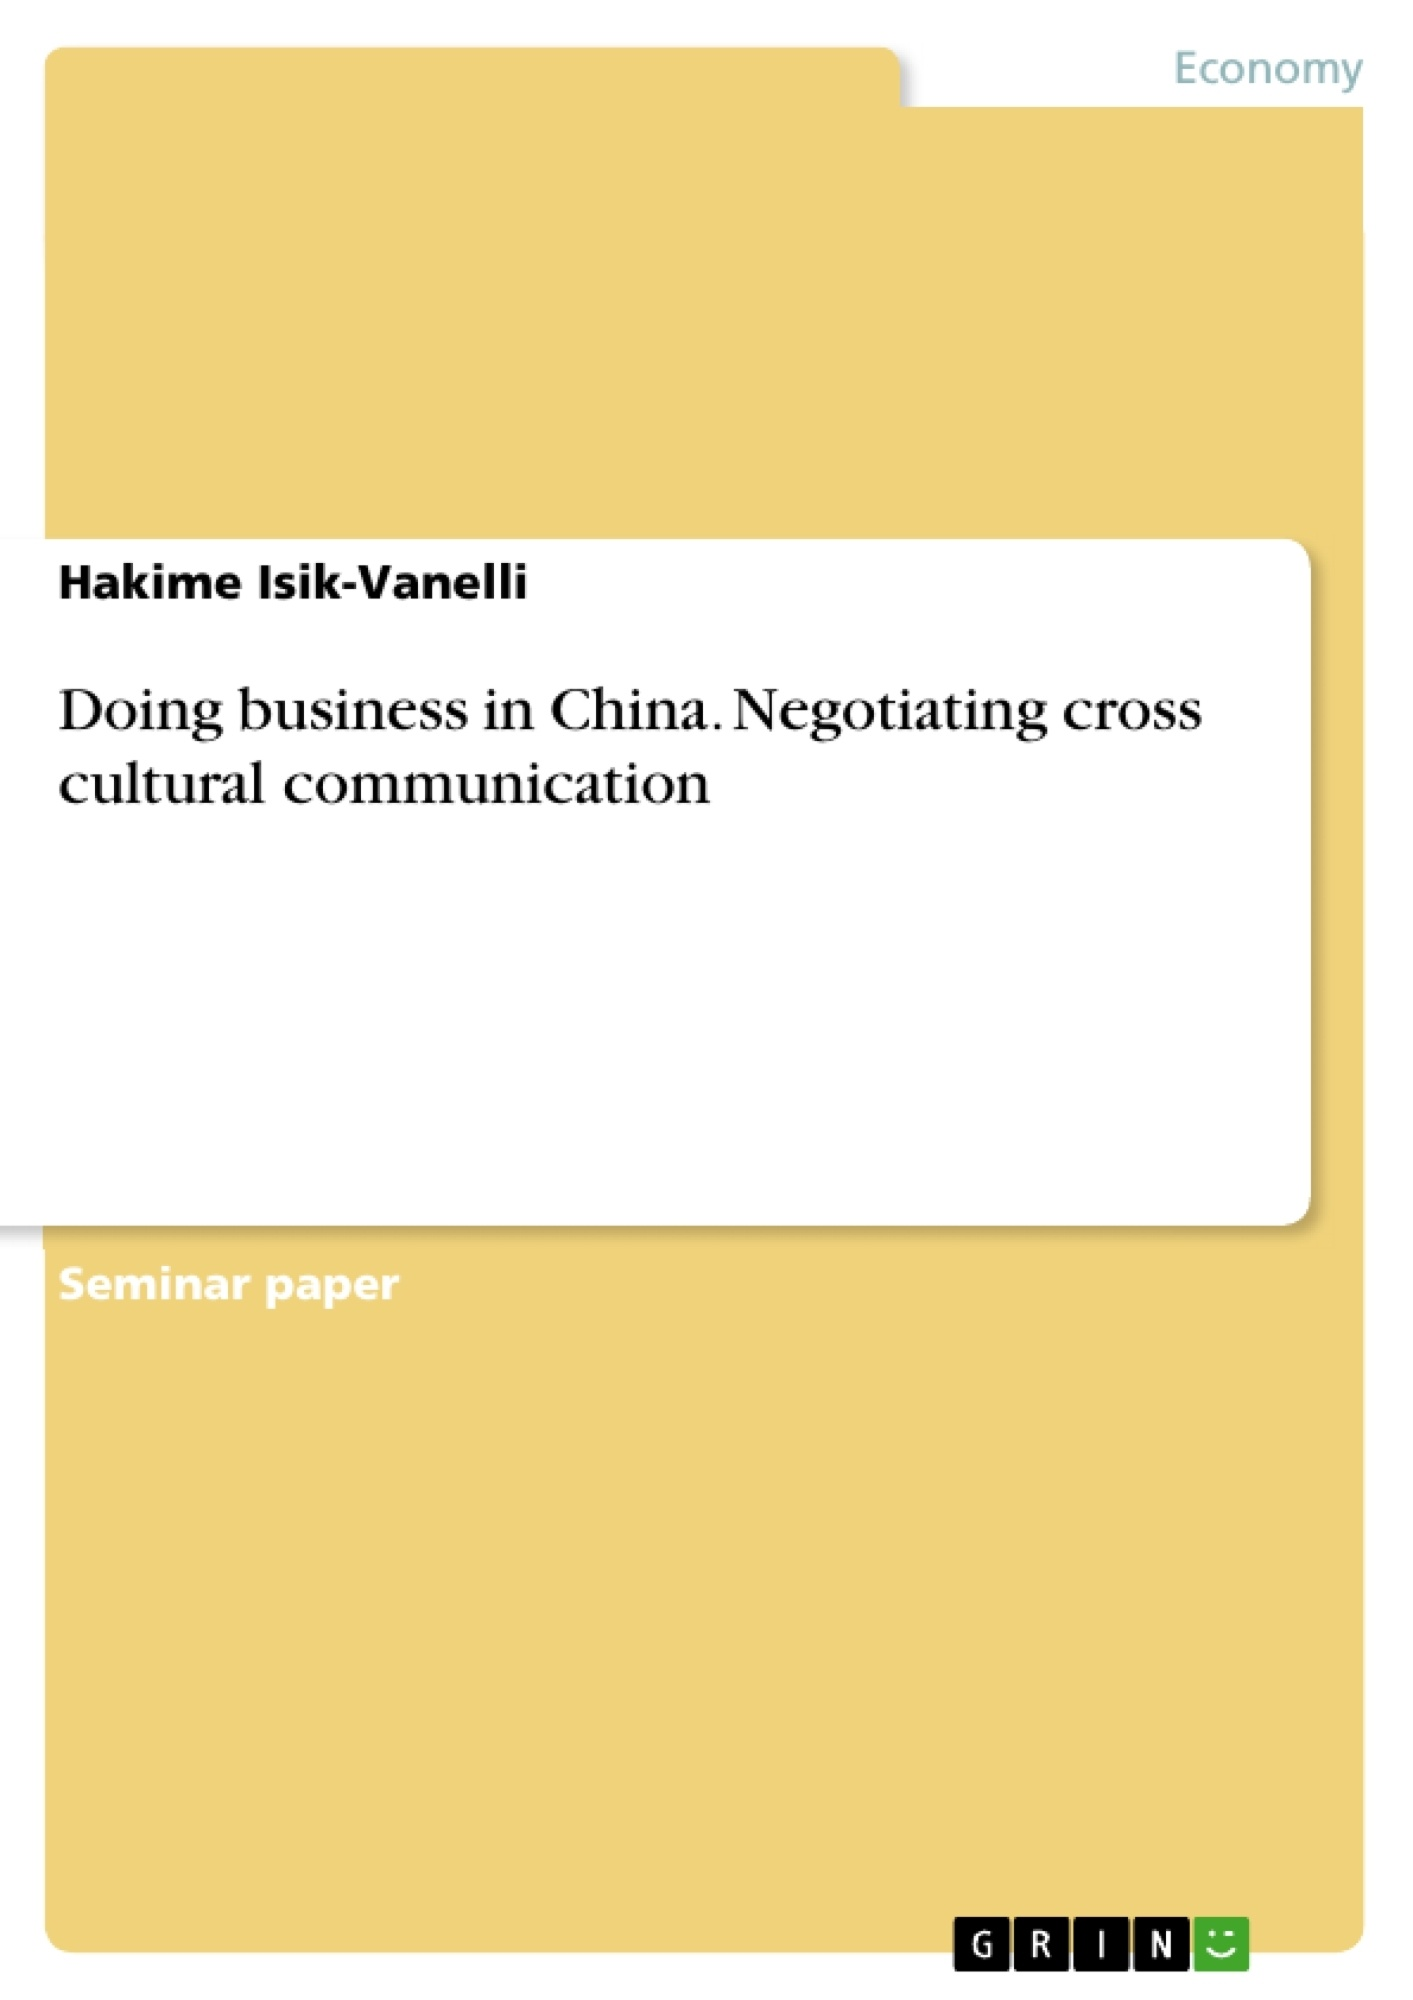 Title: Doing business in China. Negotiating cross cultural communication